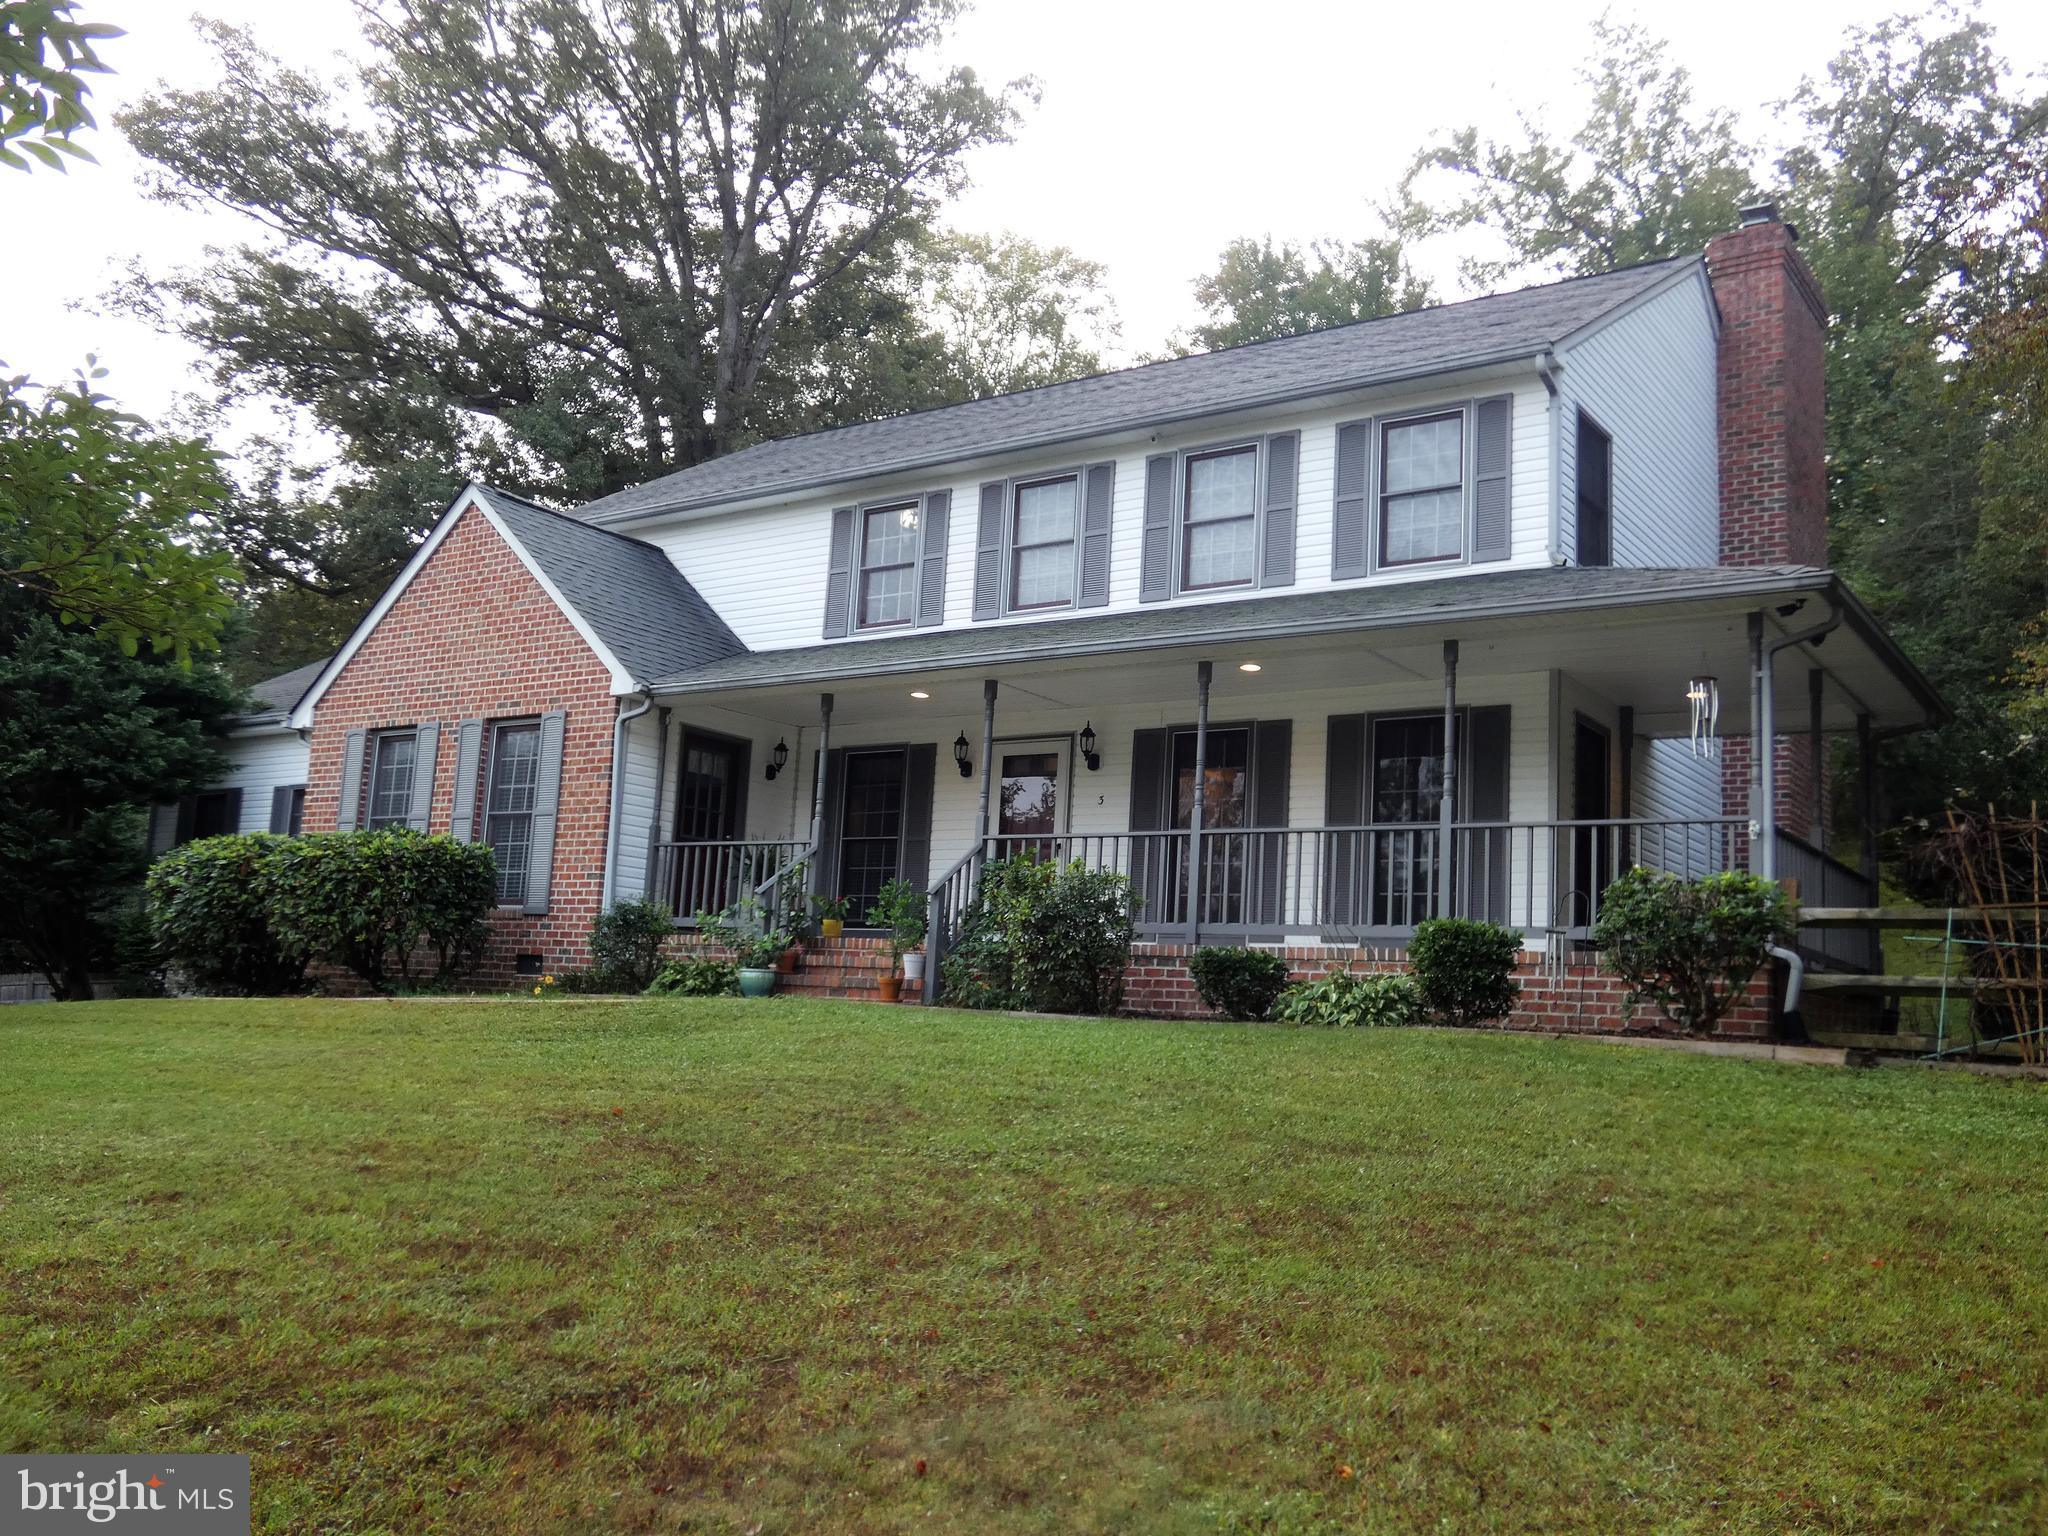 Large 3-level Colonial with over 4300 sq ft on Cul-de-sac  with over 1-acre Lot! This Home Boasts a